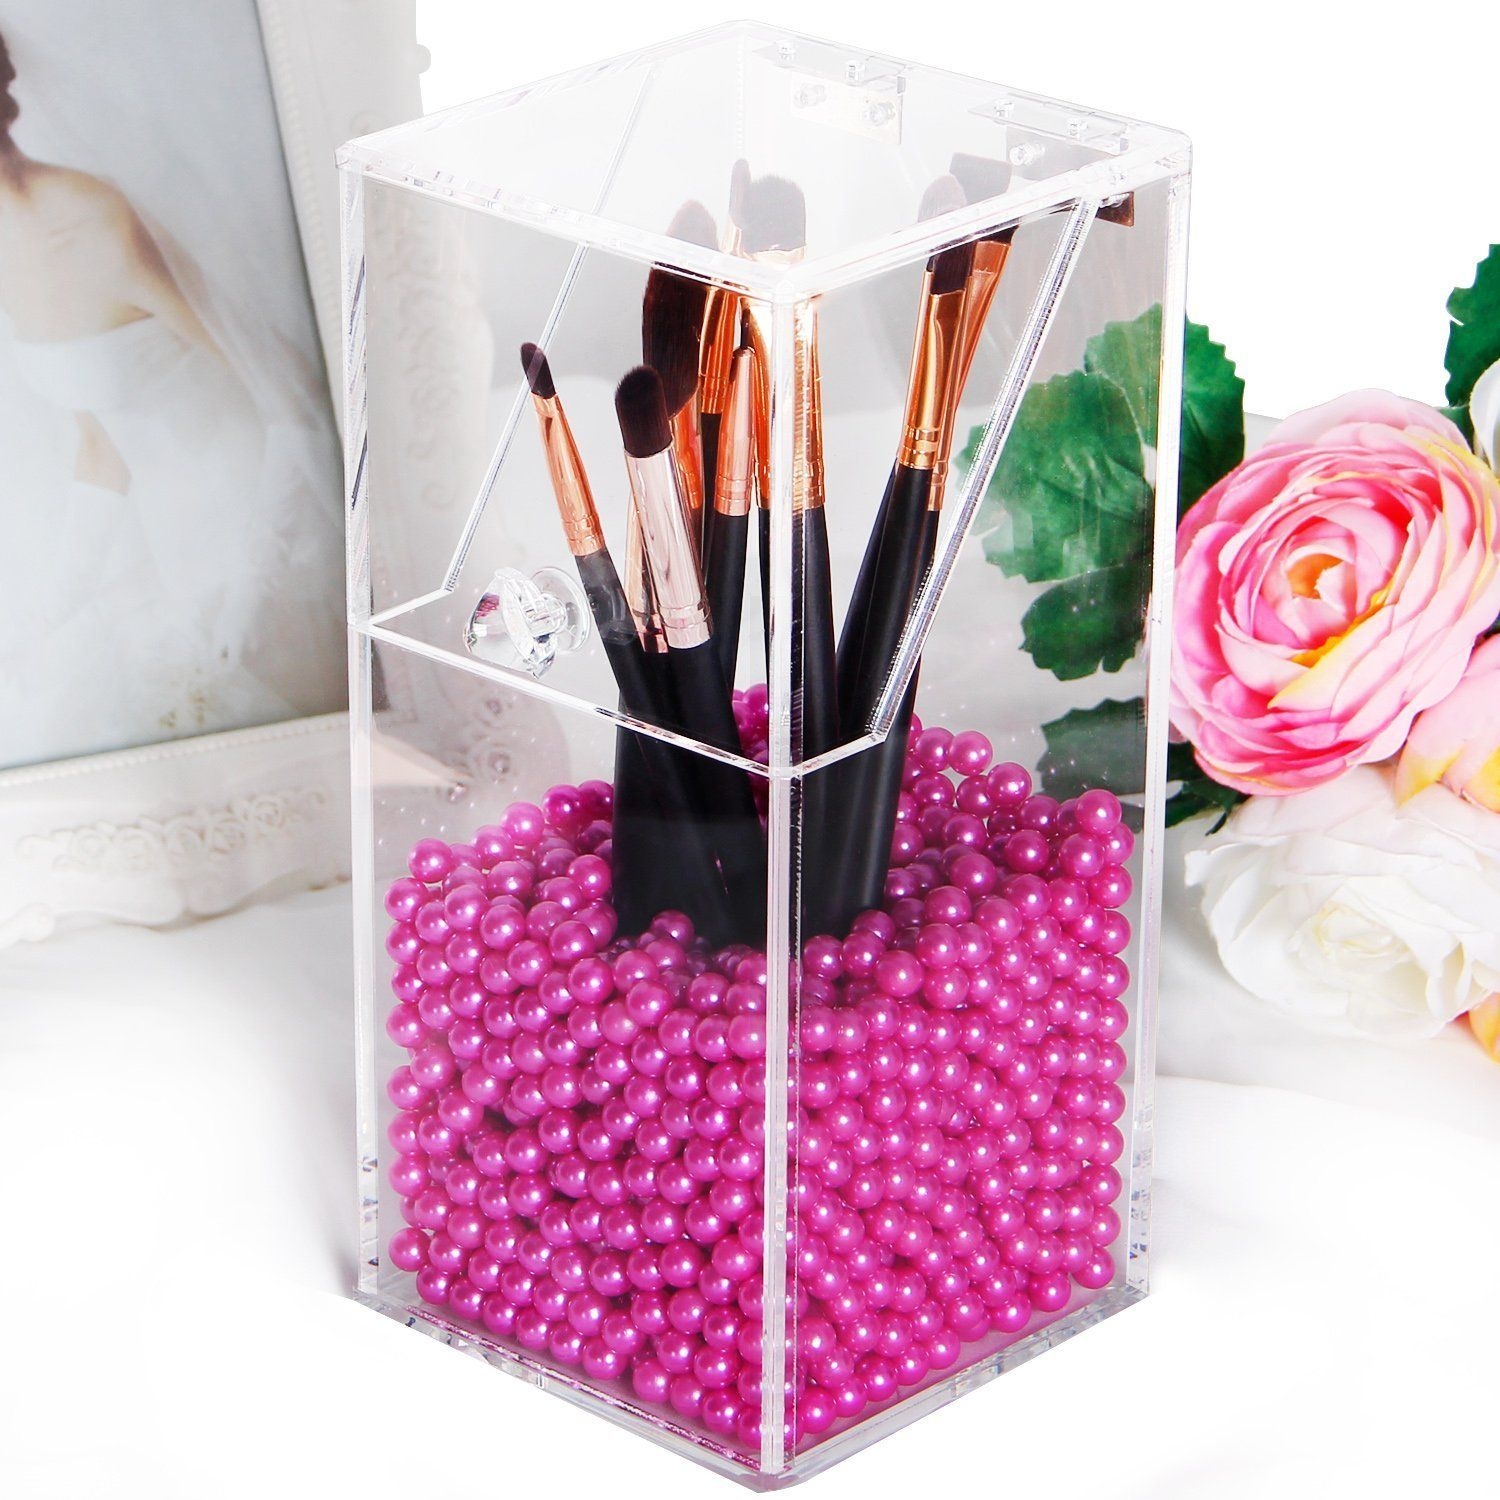 Clear Acrylic Makeup Organizer with Glossy Rosy Pearl